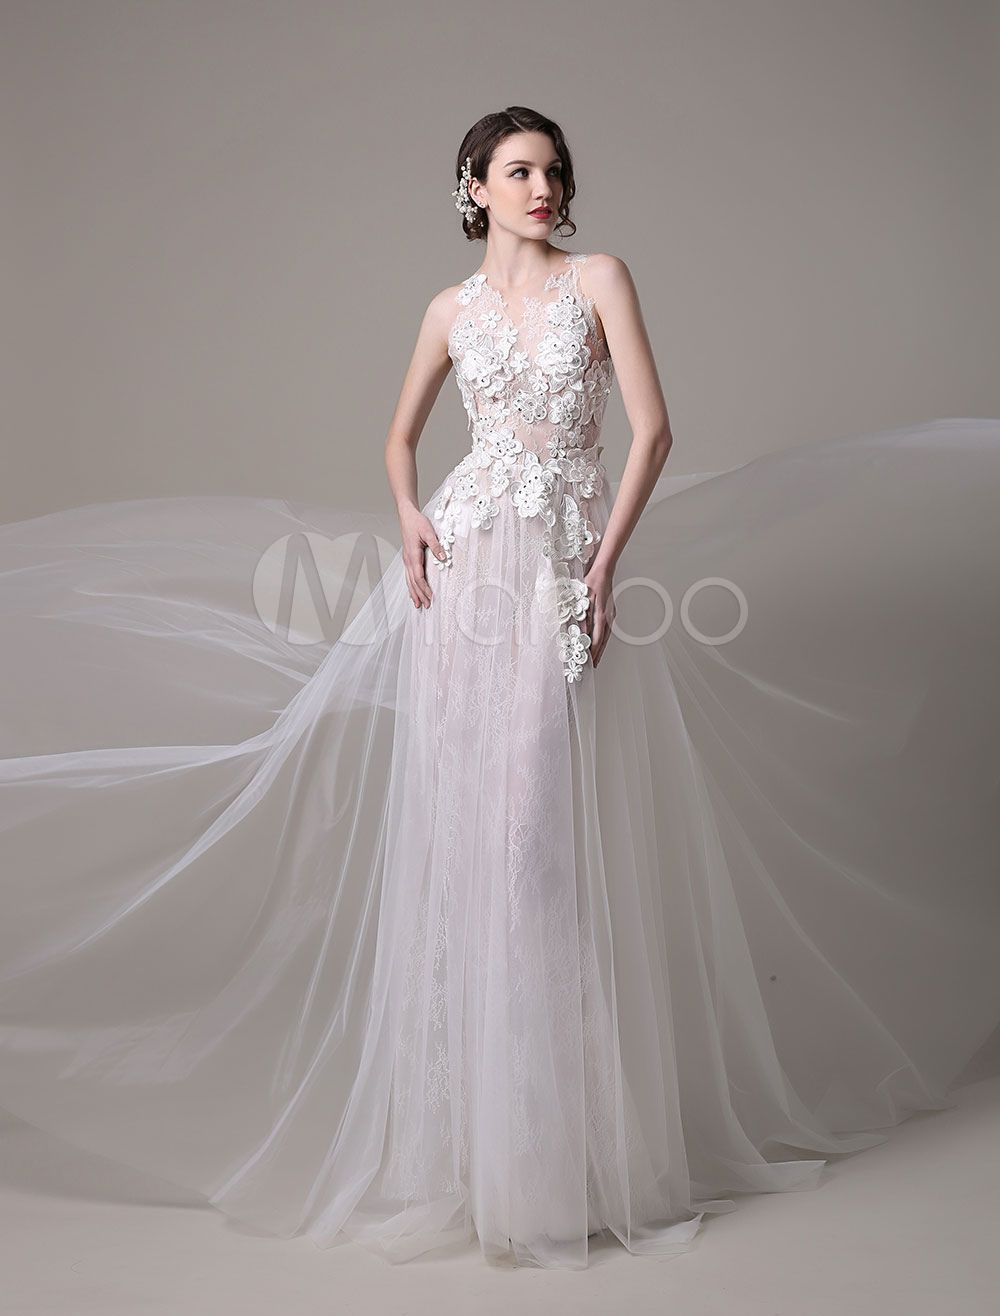 70+ 3d Lace Wedding Dress - Dressy Dresses for Weddings Check more ...